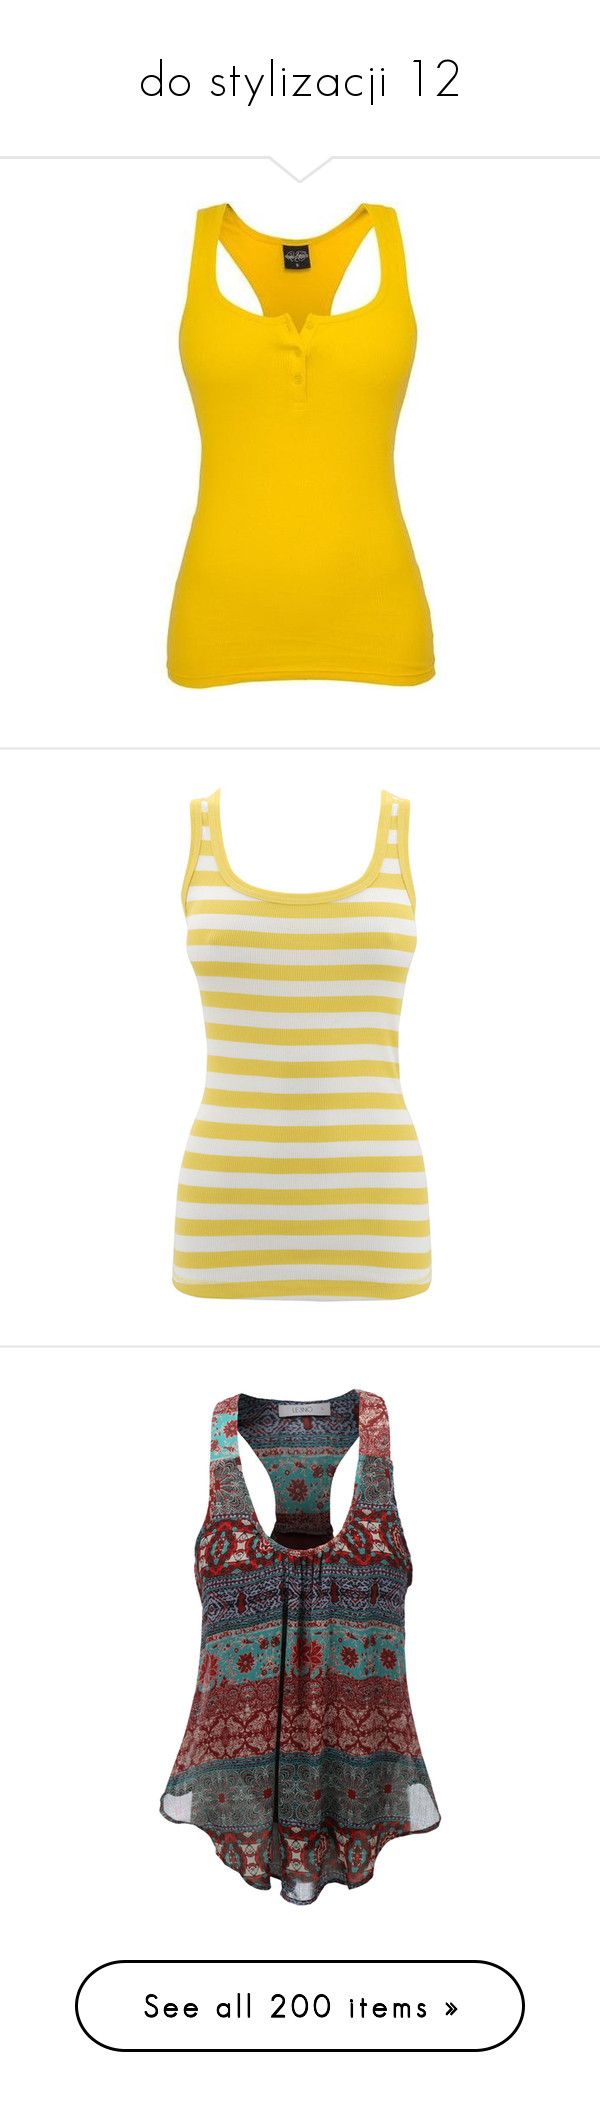 """""""do stylizacji 12"""" by ania18018970 ❤ liked on Polyvore featuring tops, yellow top, yellow tank, urban tank tops, button tank top, urban tank, shirts, leisure tops, tank tops and women's tops"""